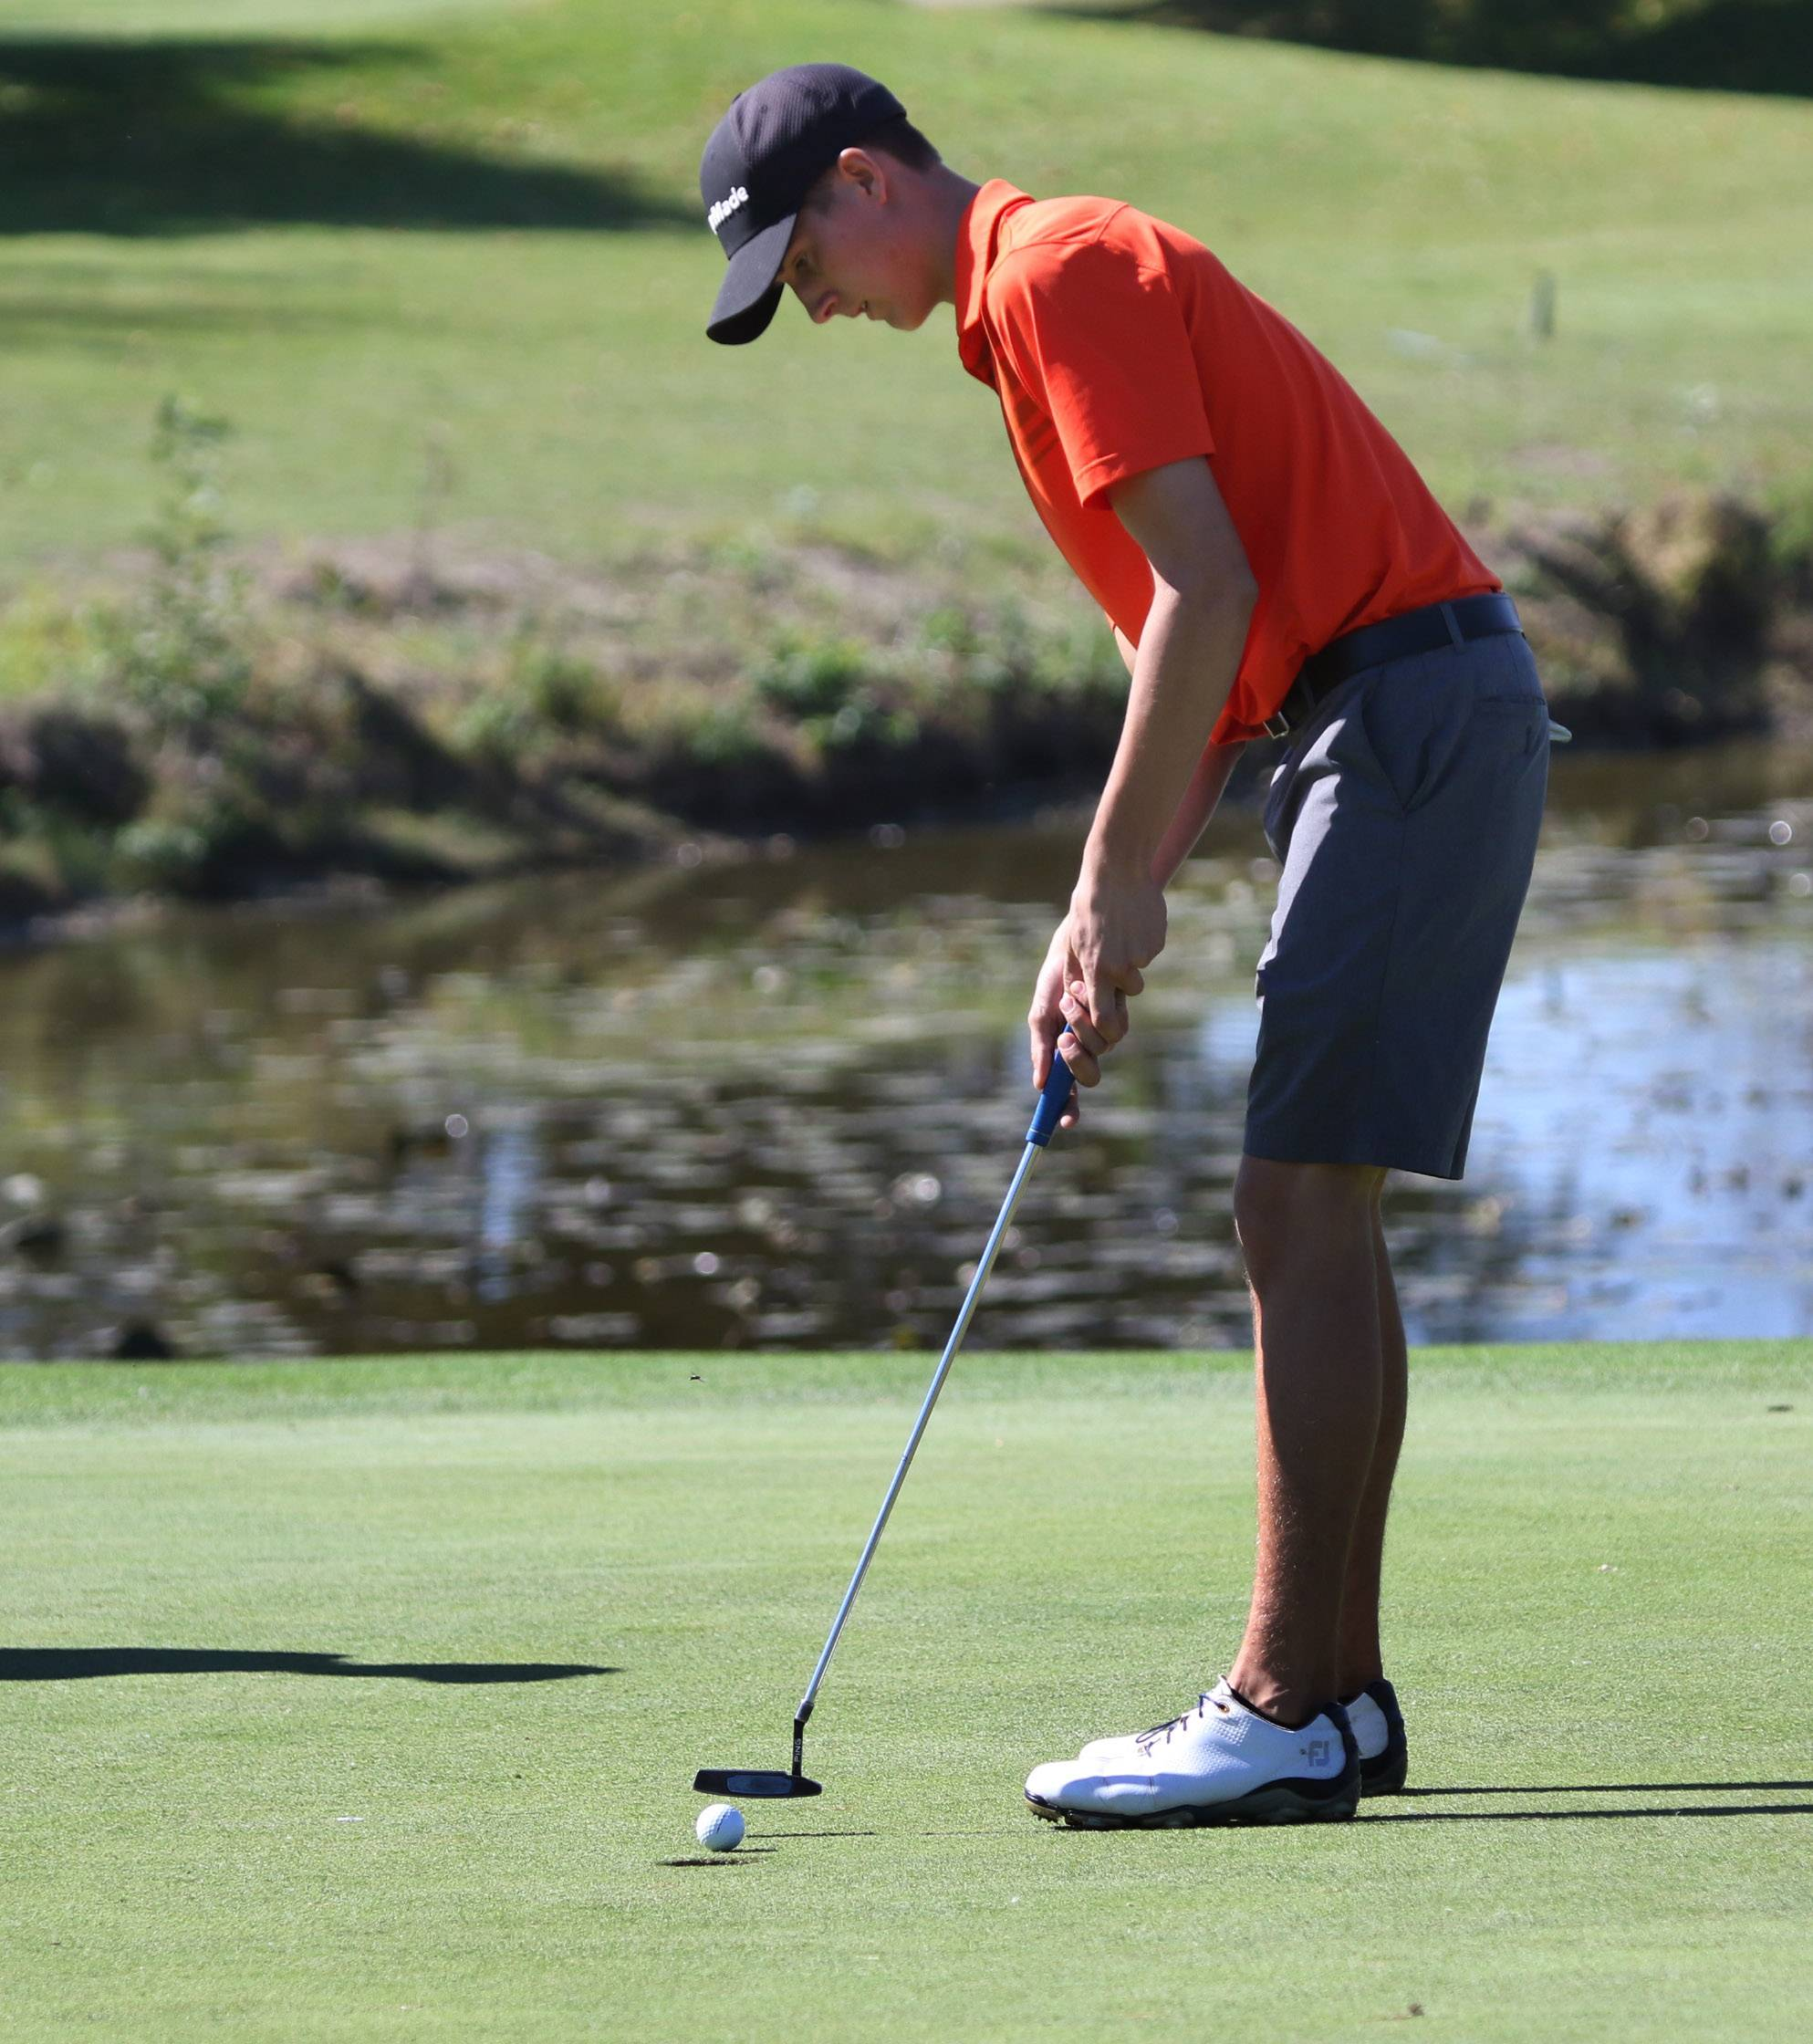 Hersey's Tommy Lumsden putts on the second hole during the Class 3A Warren boys golf sectional on Monday at Bittersweet Golf Club in Gurnee.